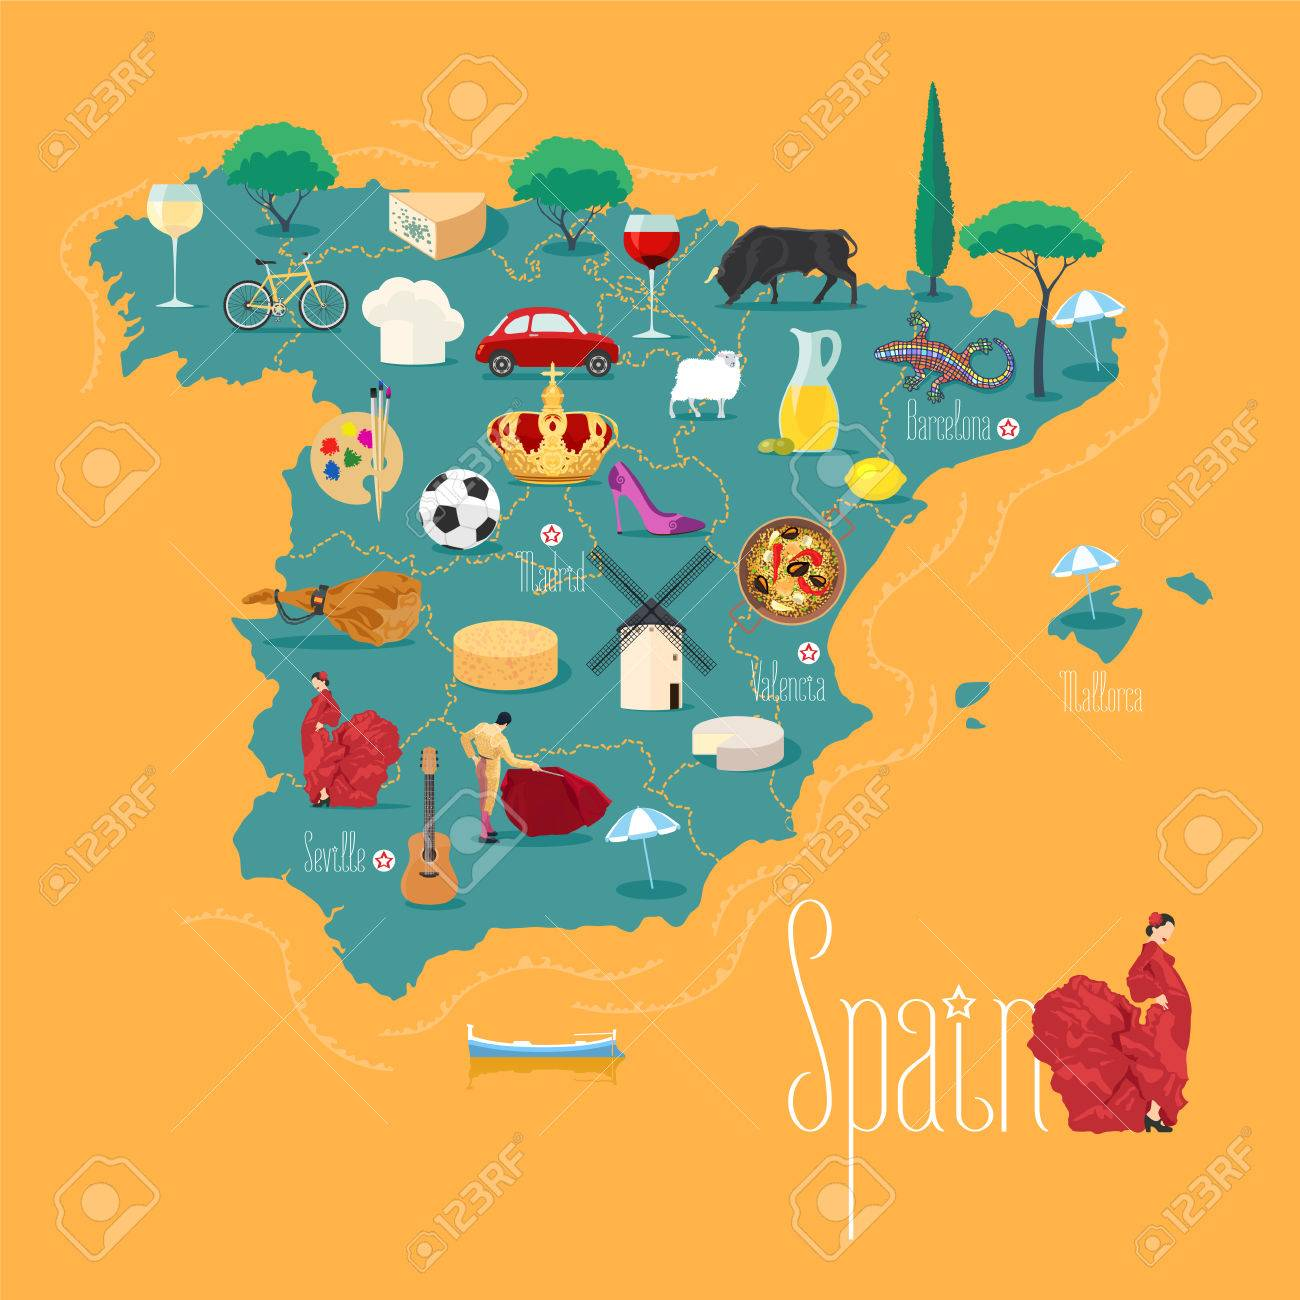 Map Of Spain Landmarks.Map Of Spain Vector Illustration Design Icons With Spanish